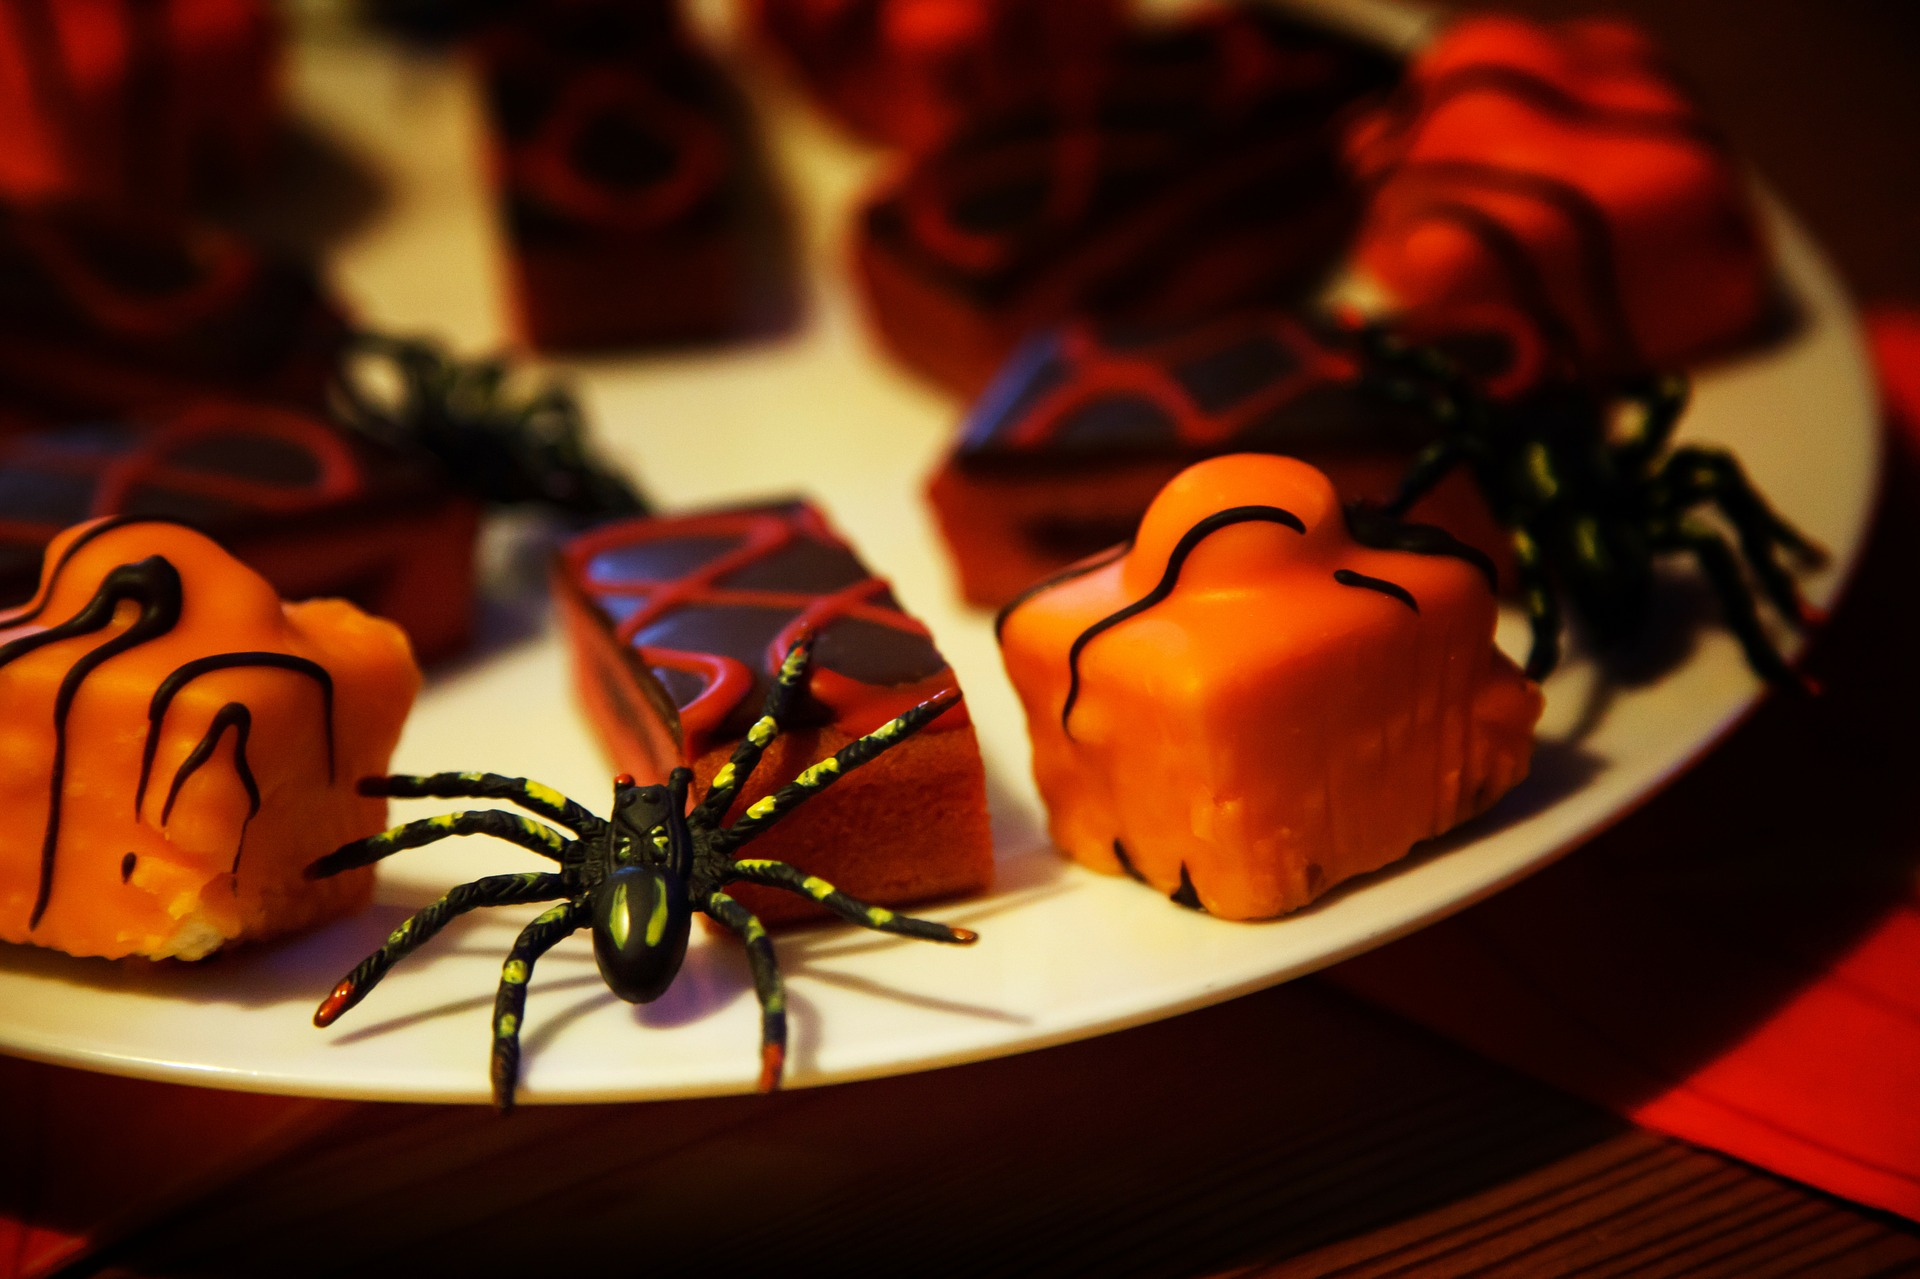 the inept chef: fang-tastic food ideas for halloween